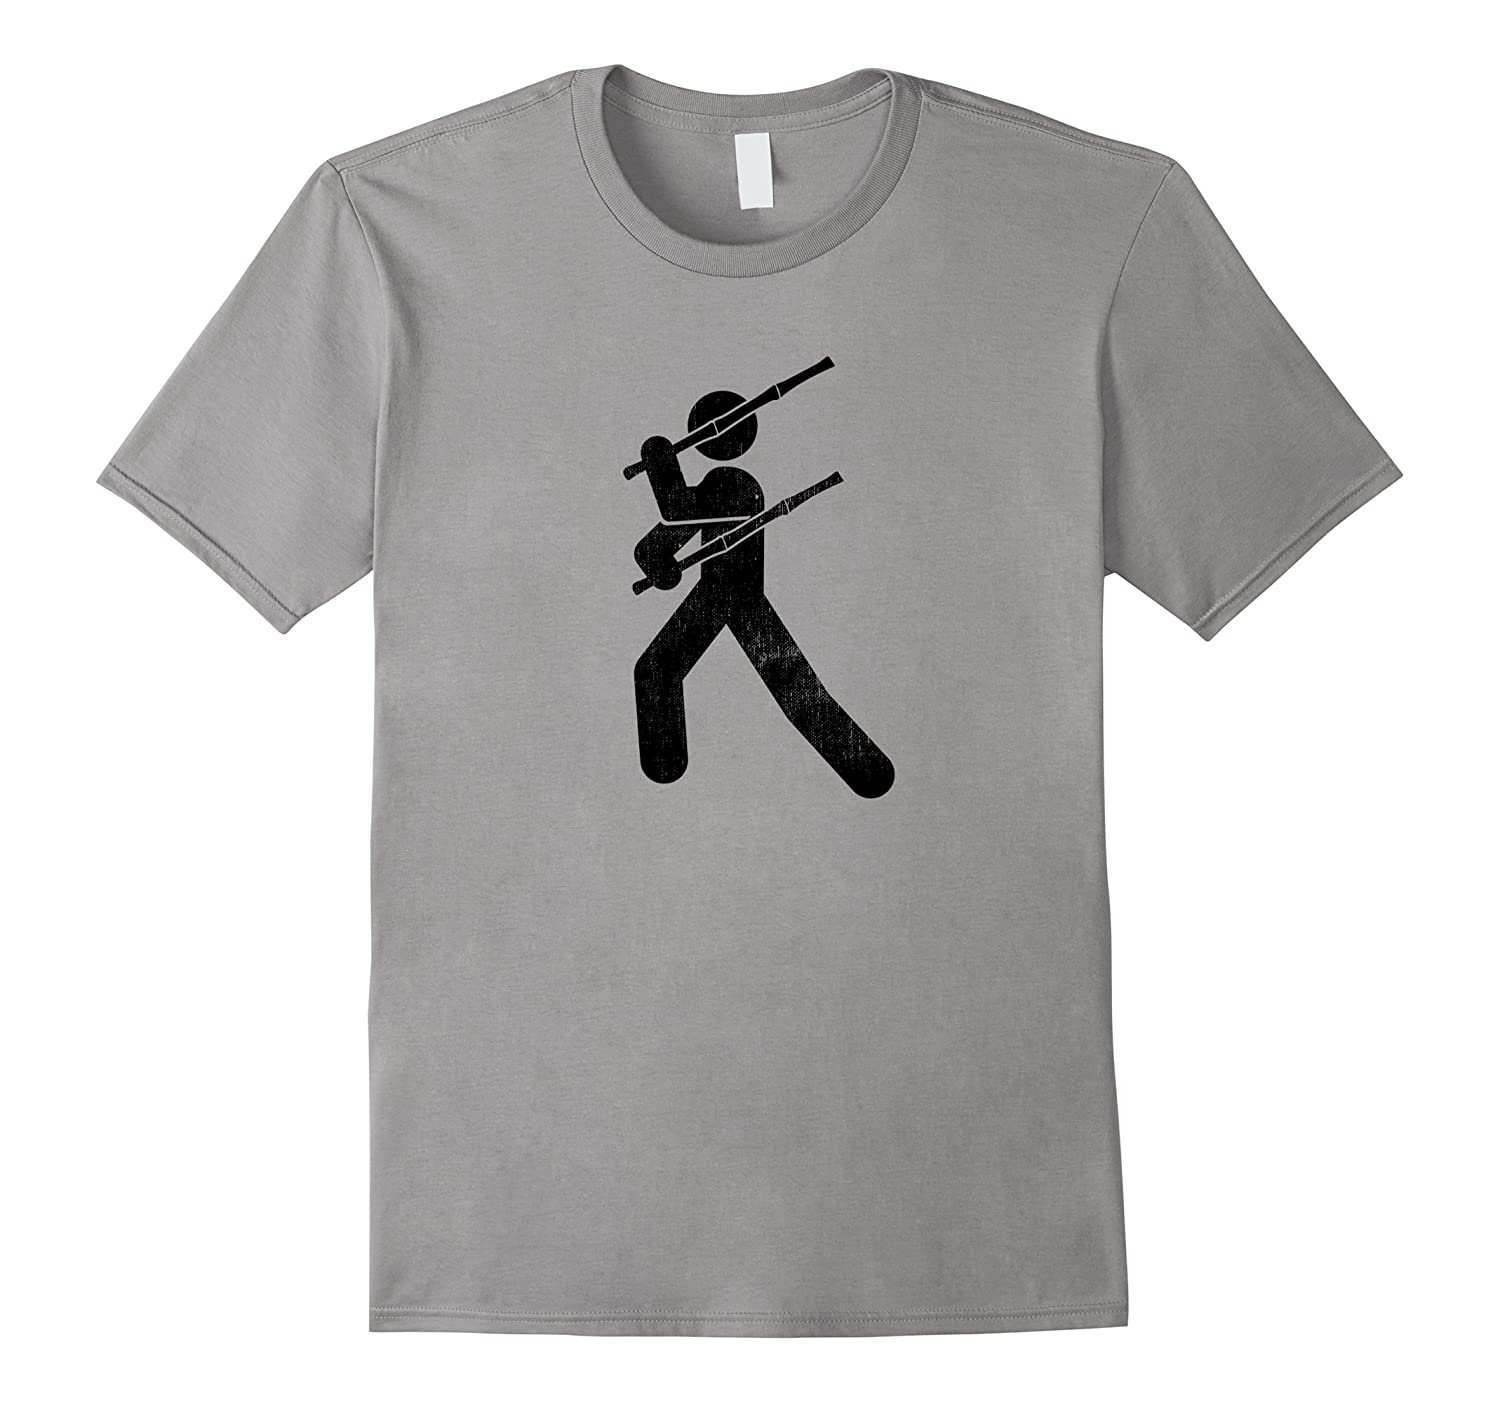 Filipino Martial Art - Eskrima Kali Arnis Stick Man T-Shirt-T-Shirt